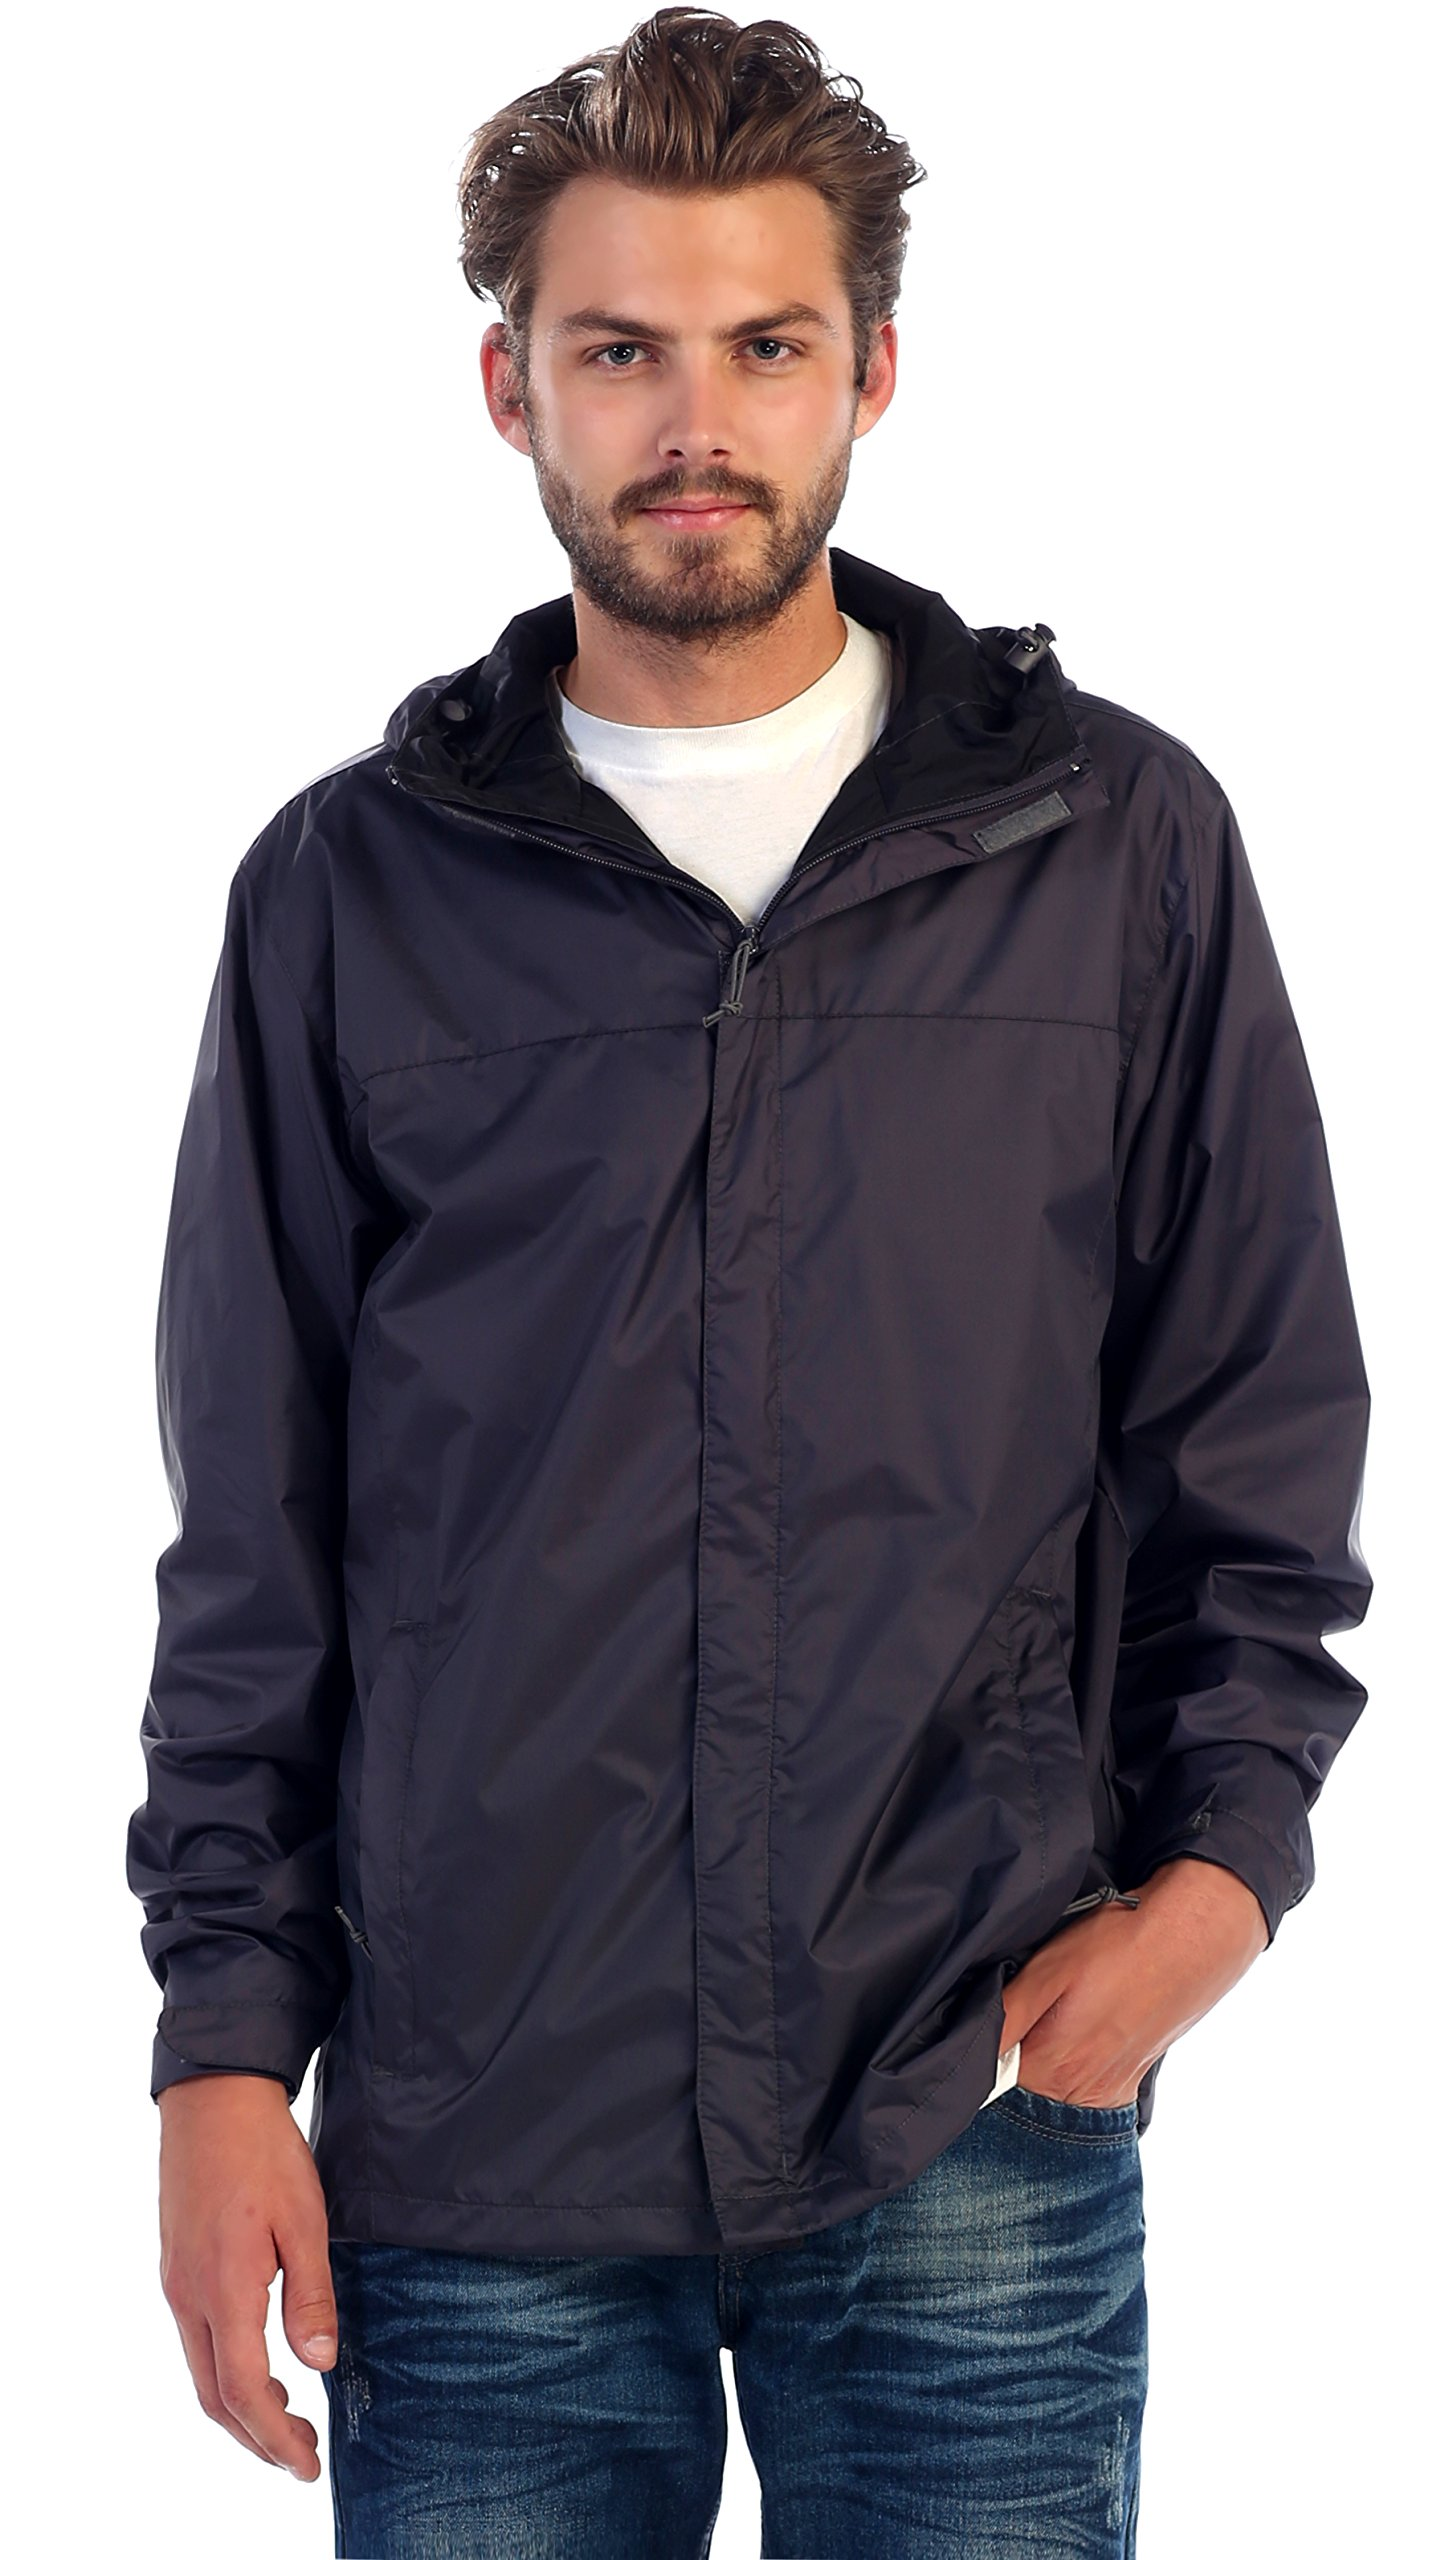 Gioberti Men's Waterproof Rain Jacket, Charcoal, XL by Gioberti